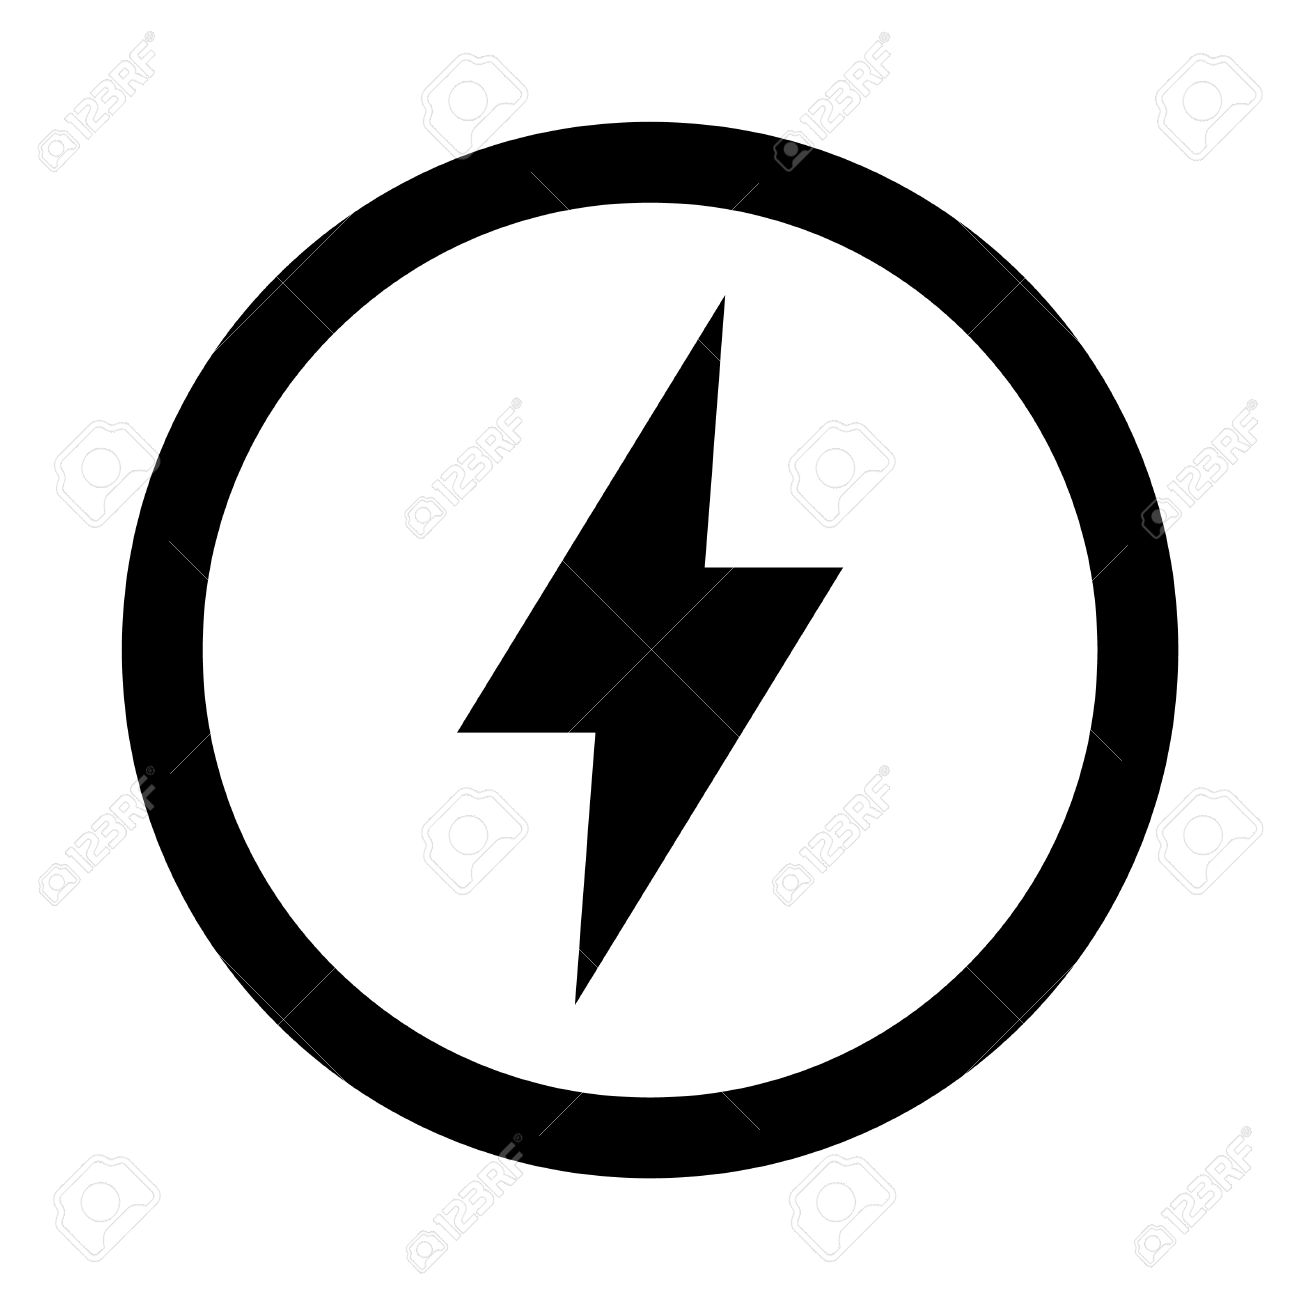 lightning bolt vector icon royalty free cliparts vectors and stock rh 123rf com vector lightning bolt png vector image of lightning bolt